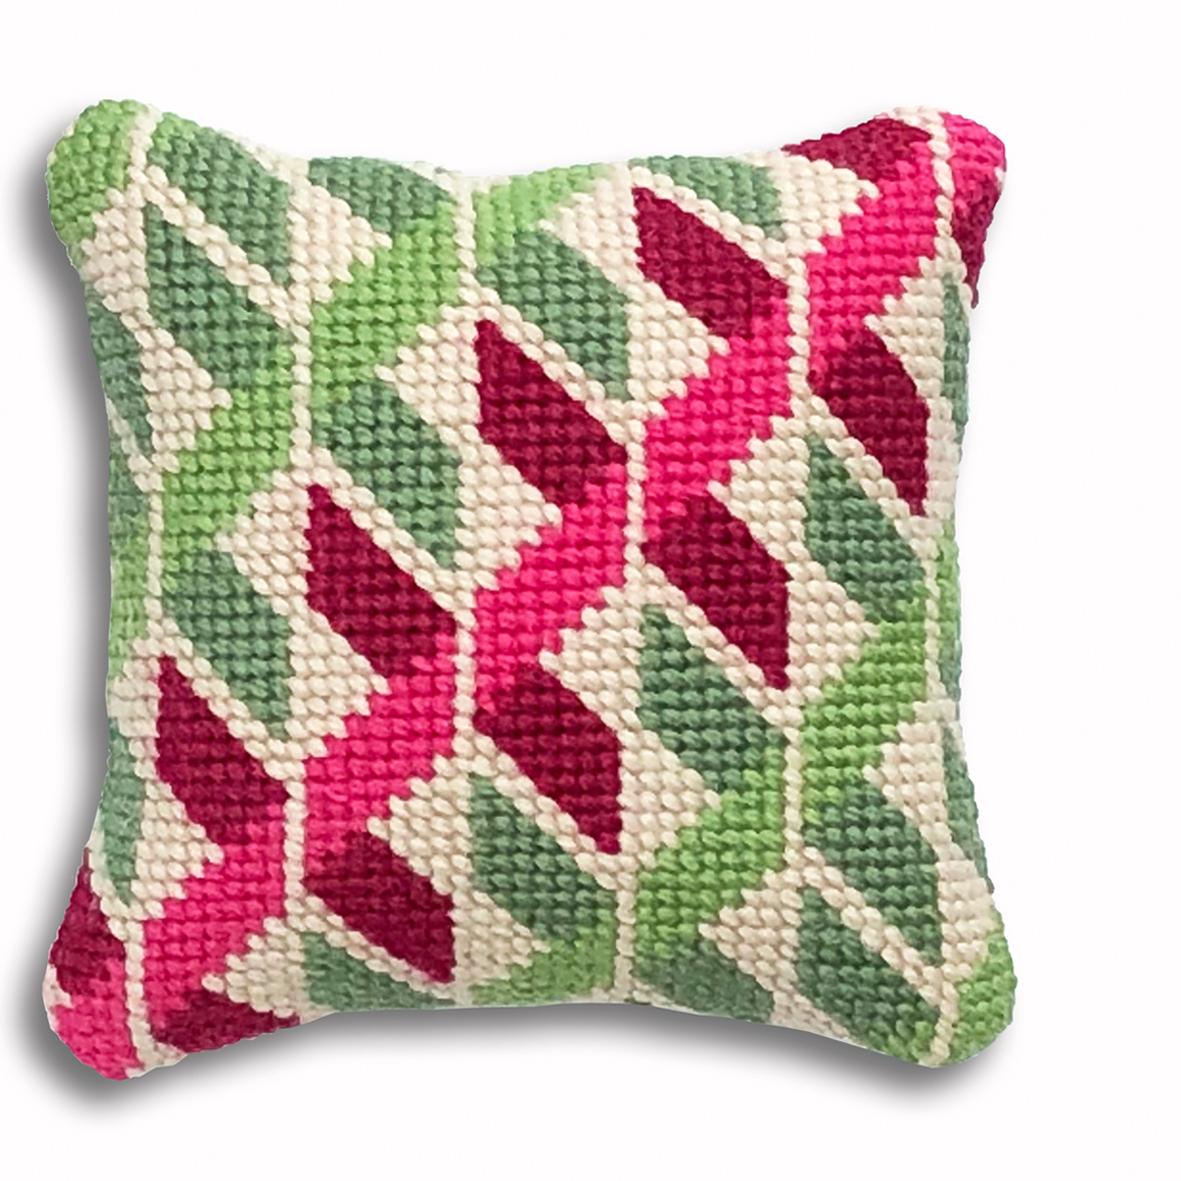 Geometric Twists mini kit  Green and pink colourway  £16  (includes free UK postage)